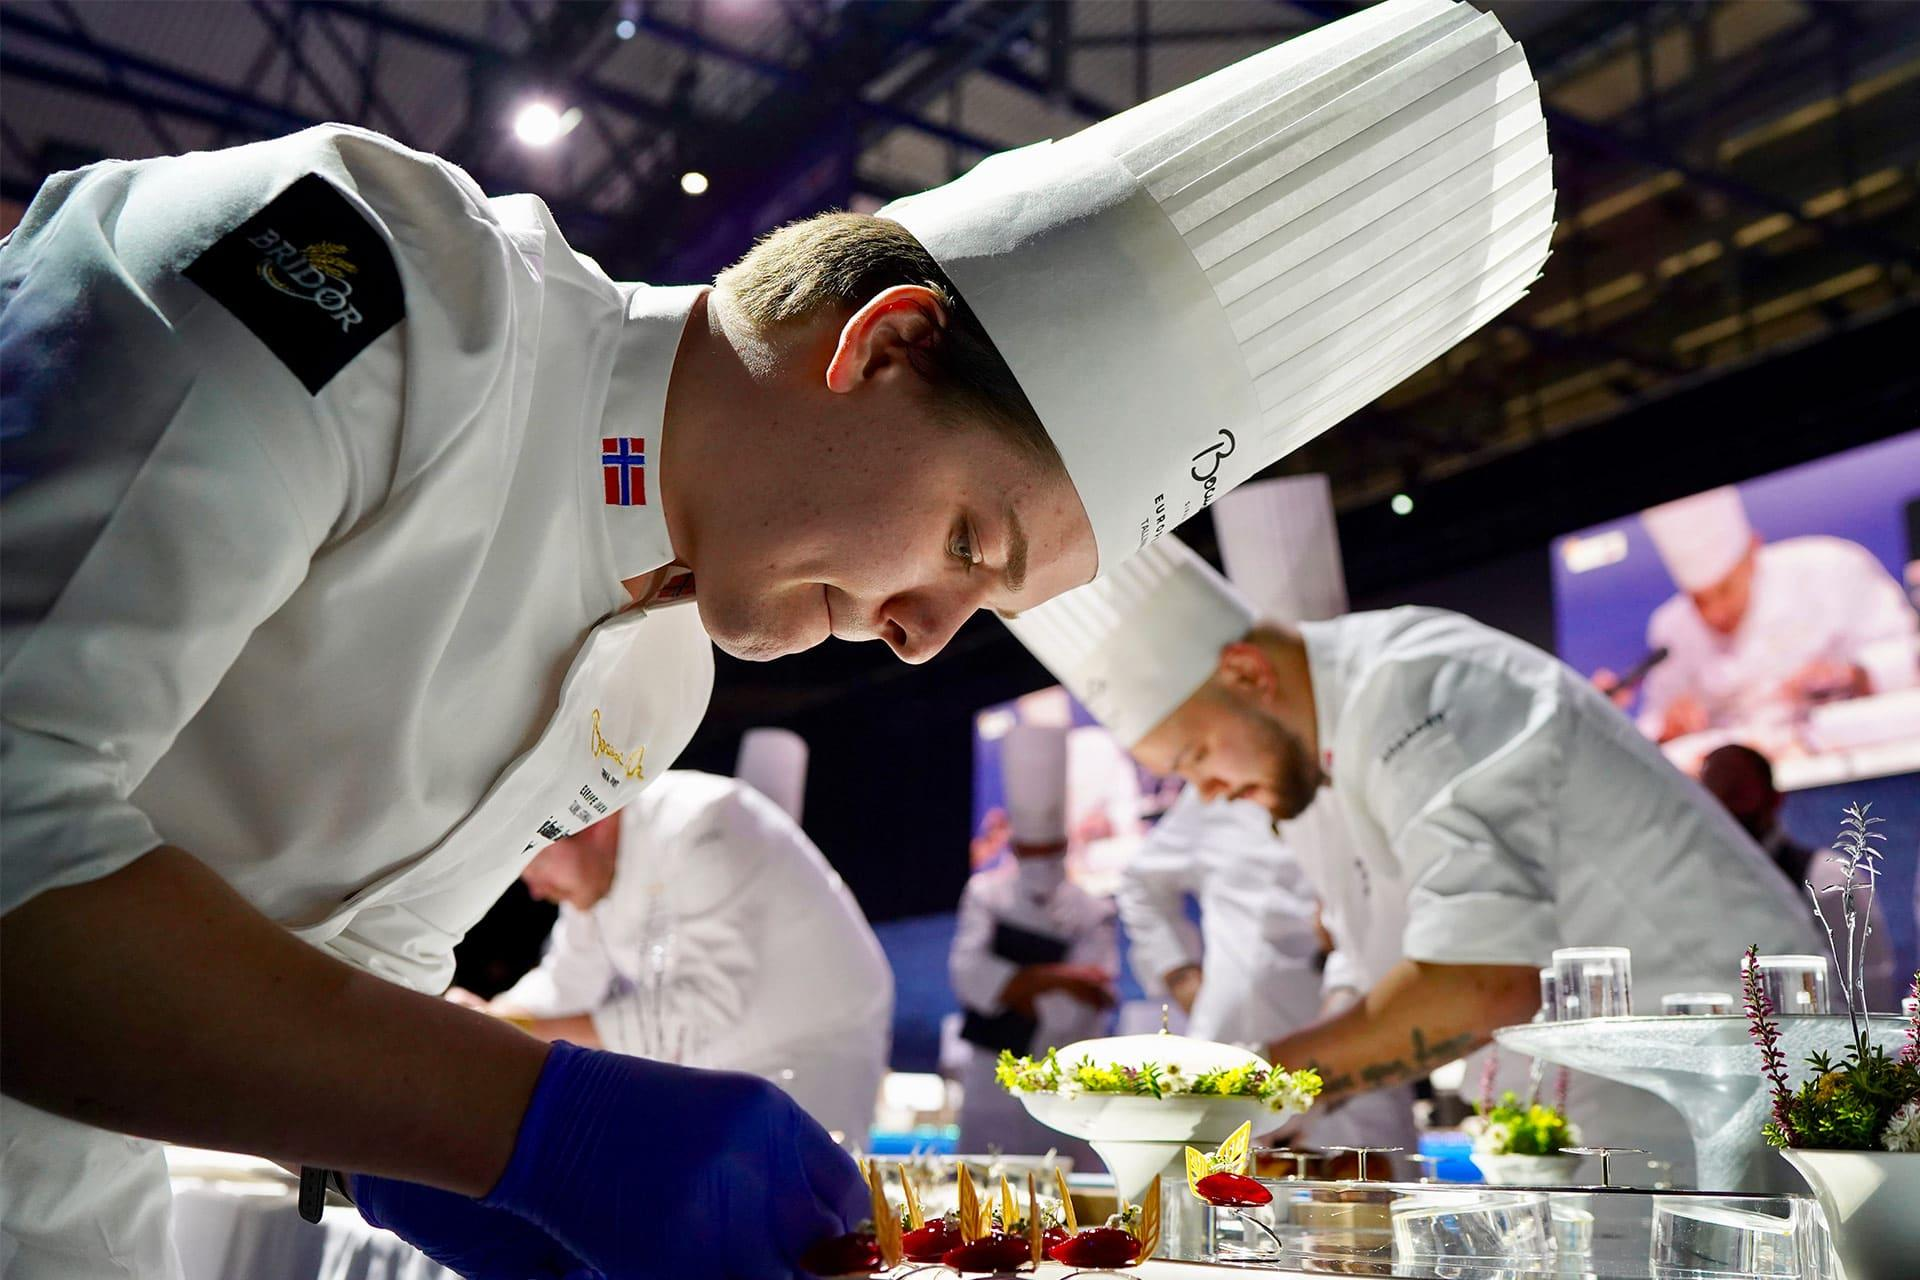 Chefs cooking during the Bocuse d'Or 2020 Europe